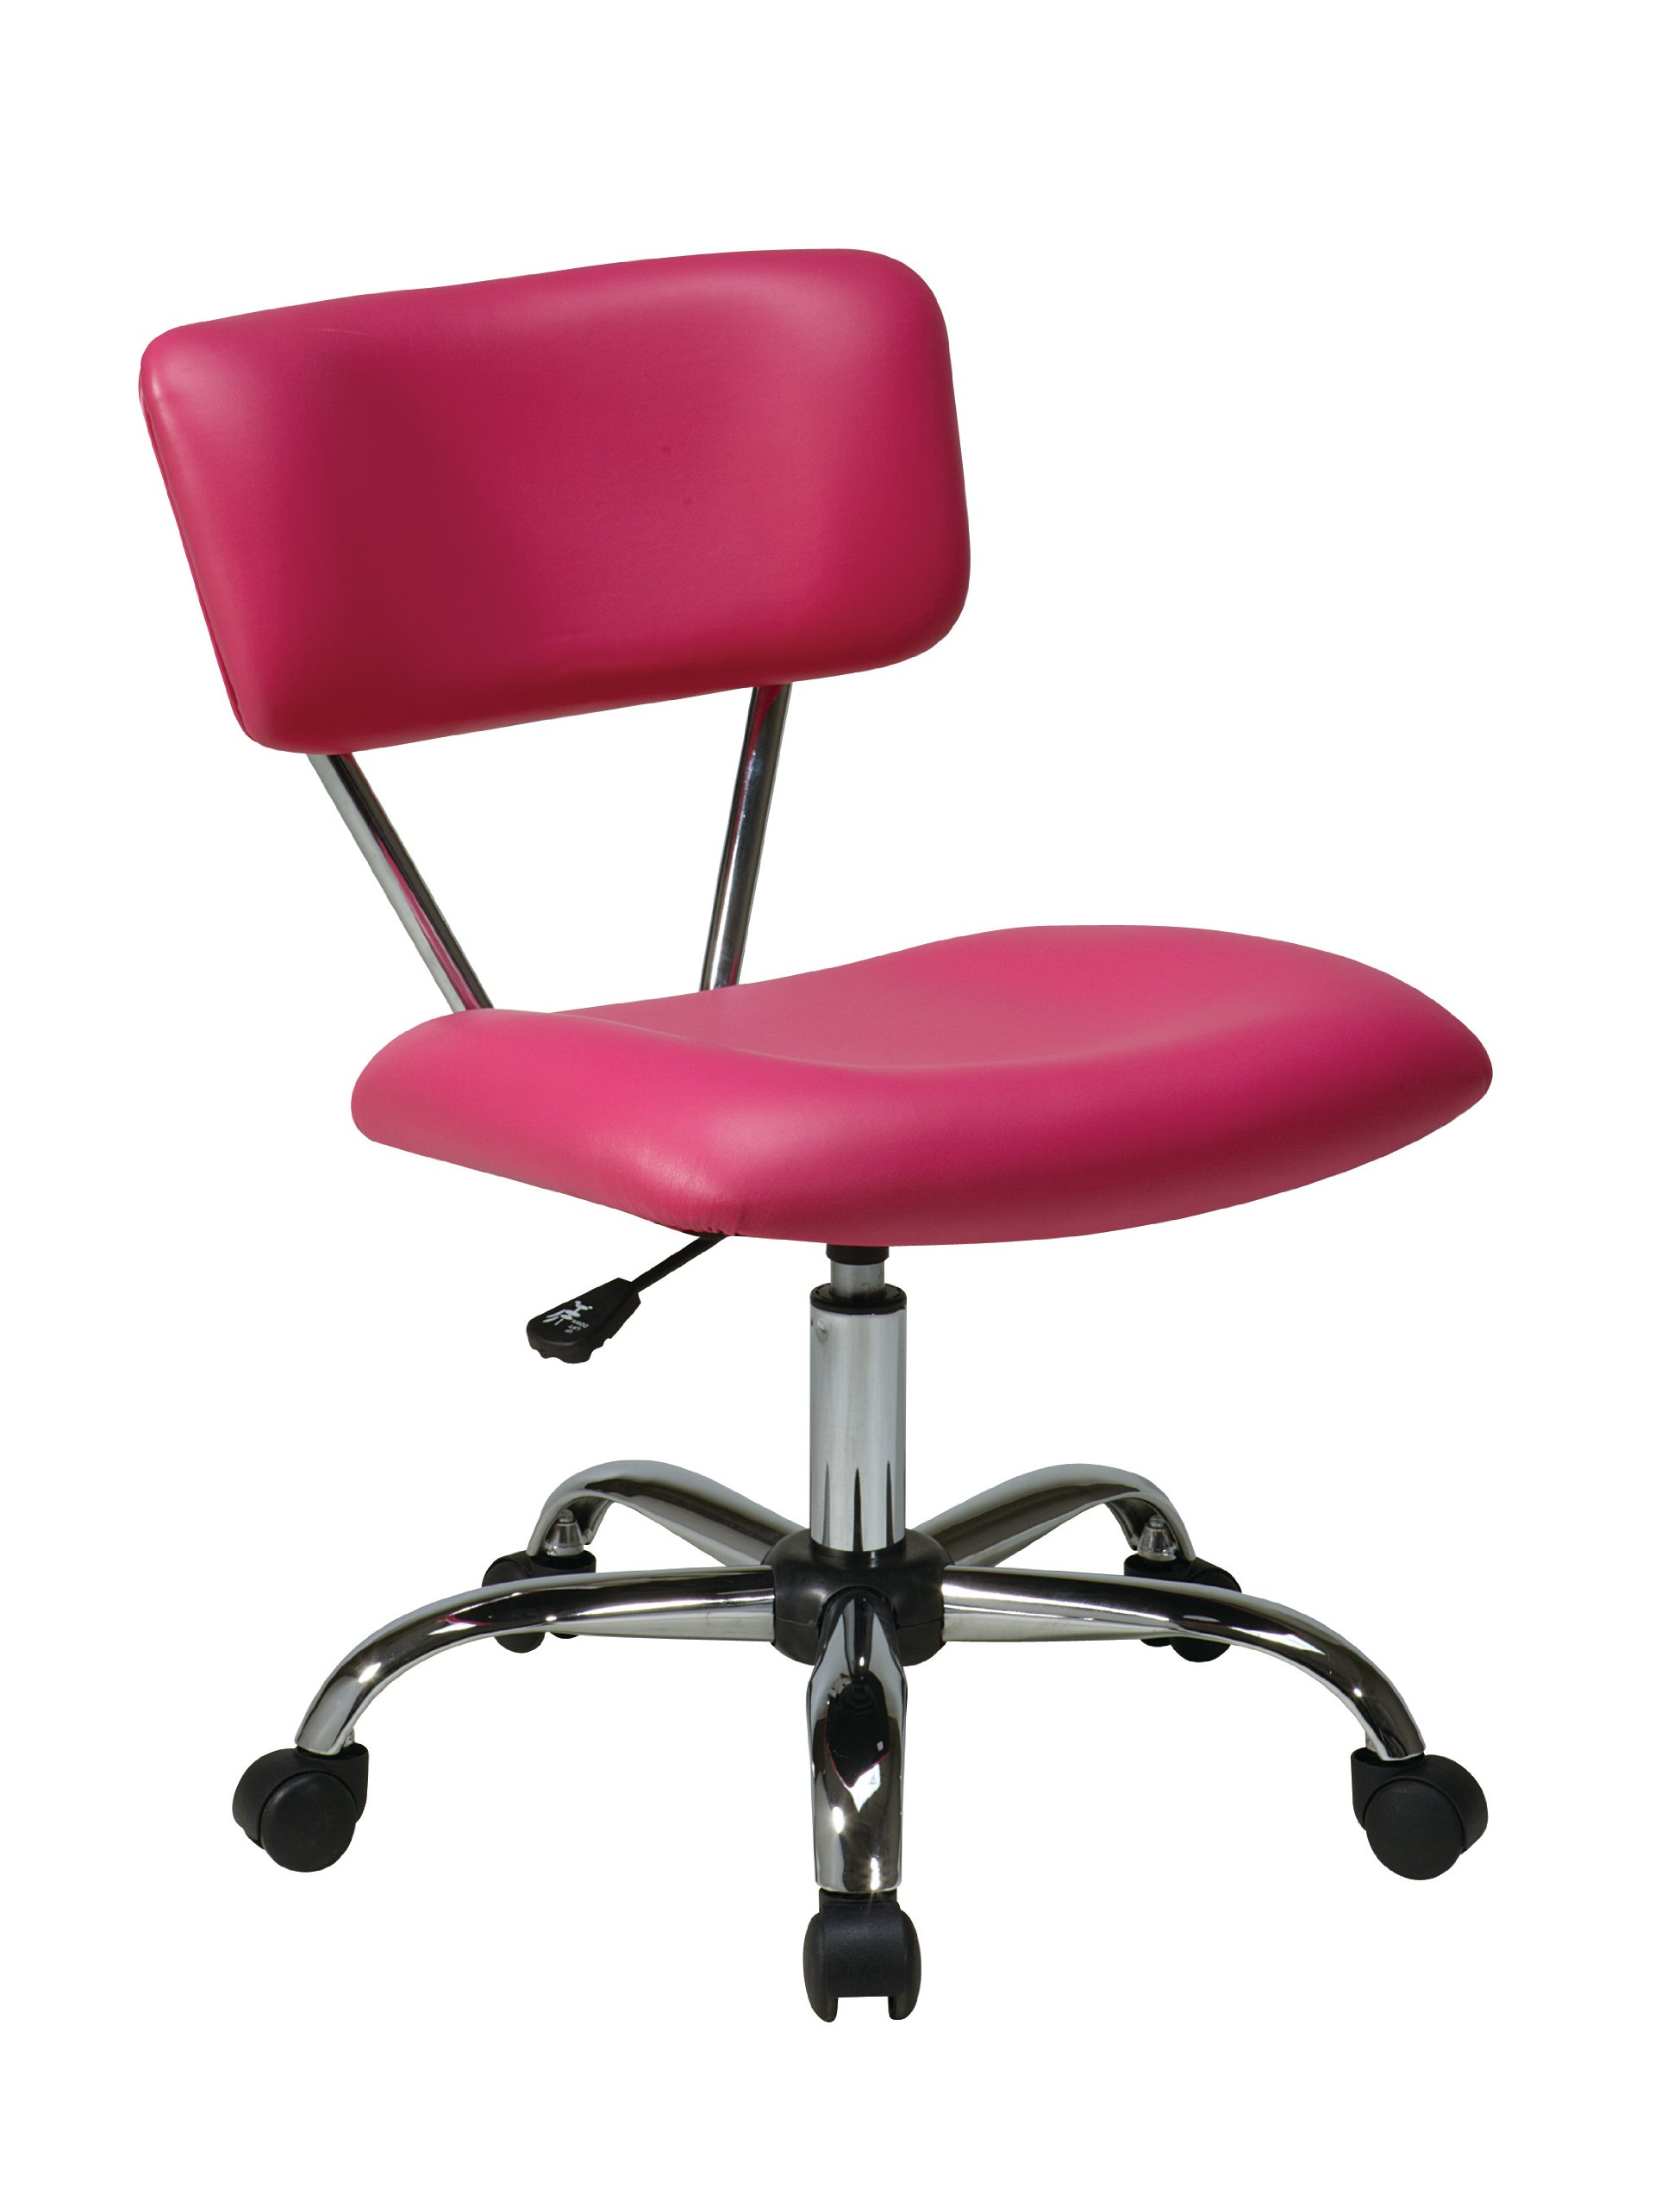 AVE SIX Vista Faux Leather Seat and Back Task Chair with Chrome Accents, Pink